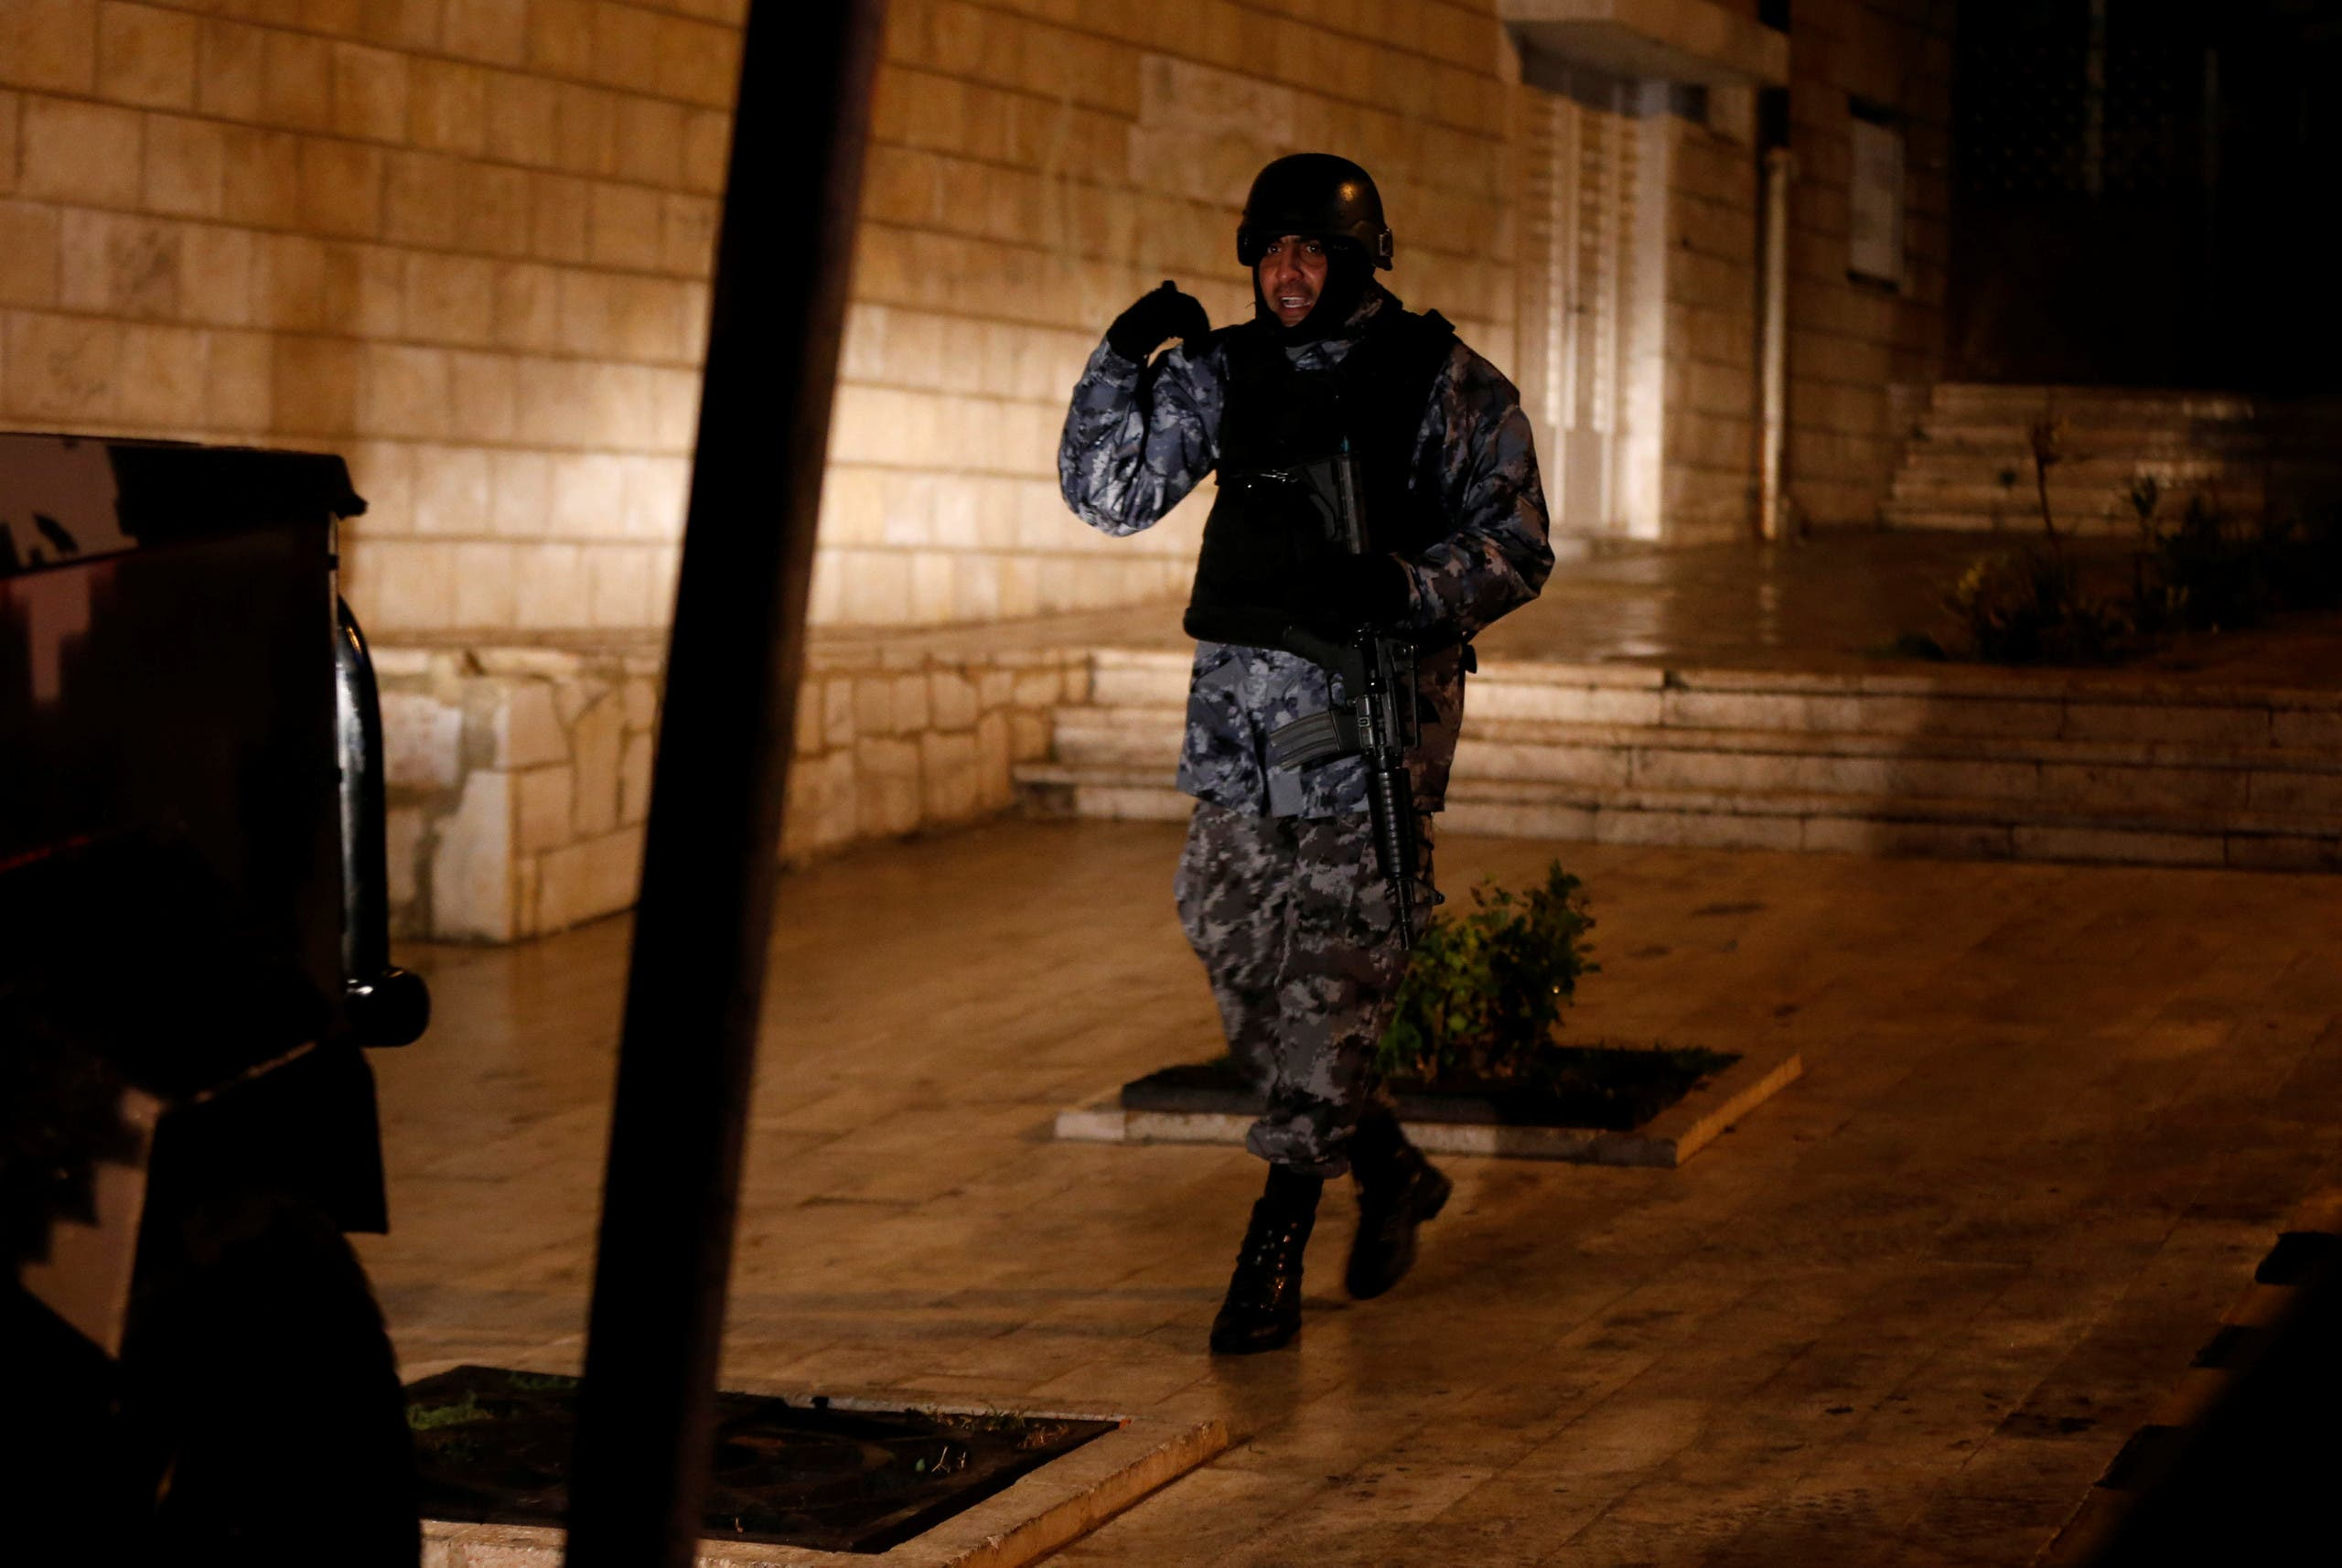 A Jordanian policeman stands guard in the vicinity of Kerak Castle where armed gunmen carried out an attack, in the city of Karak, Jordan, December 18, 2016. reuters